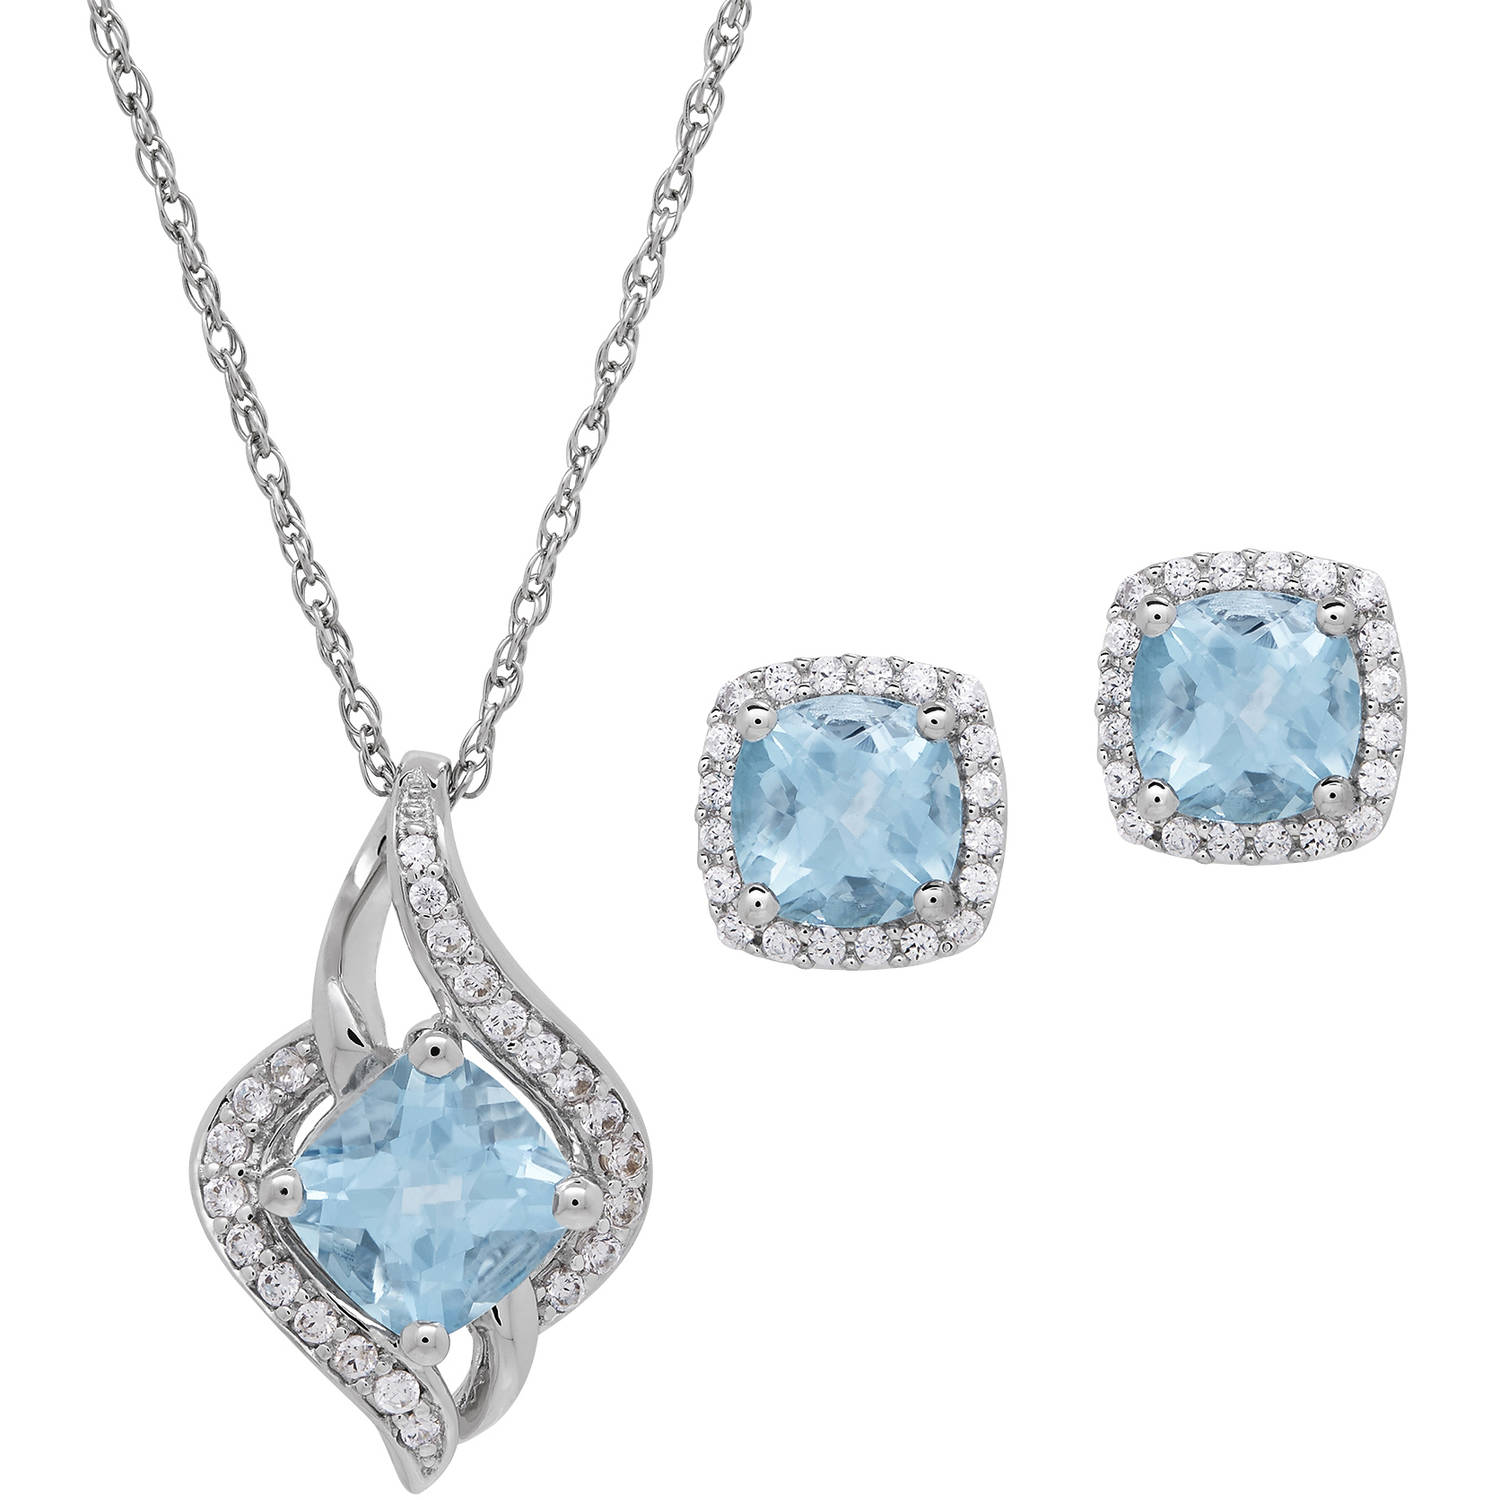 Cushion-Cut Blue Topaz & CZ Accent Sterling Silver Pendant and Earrings Set, 18 Chain